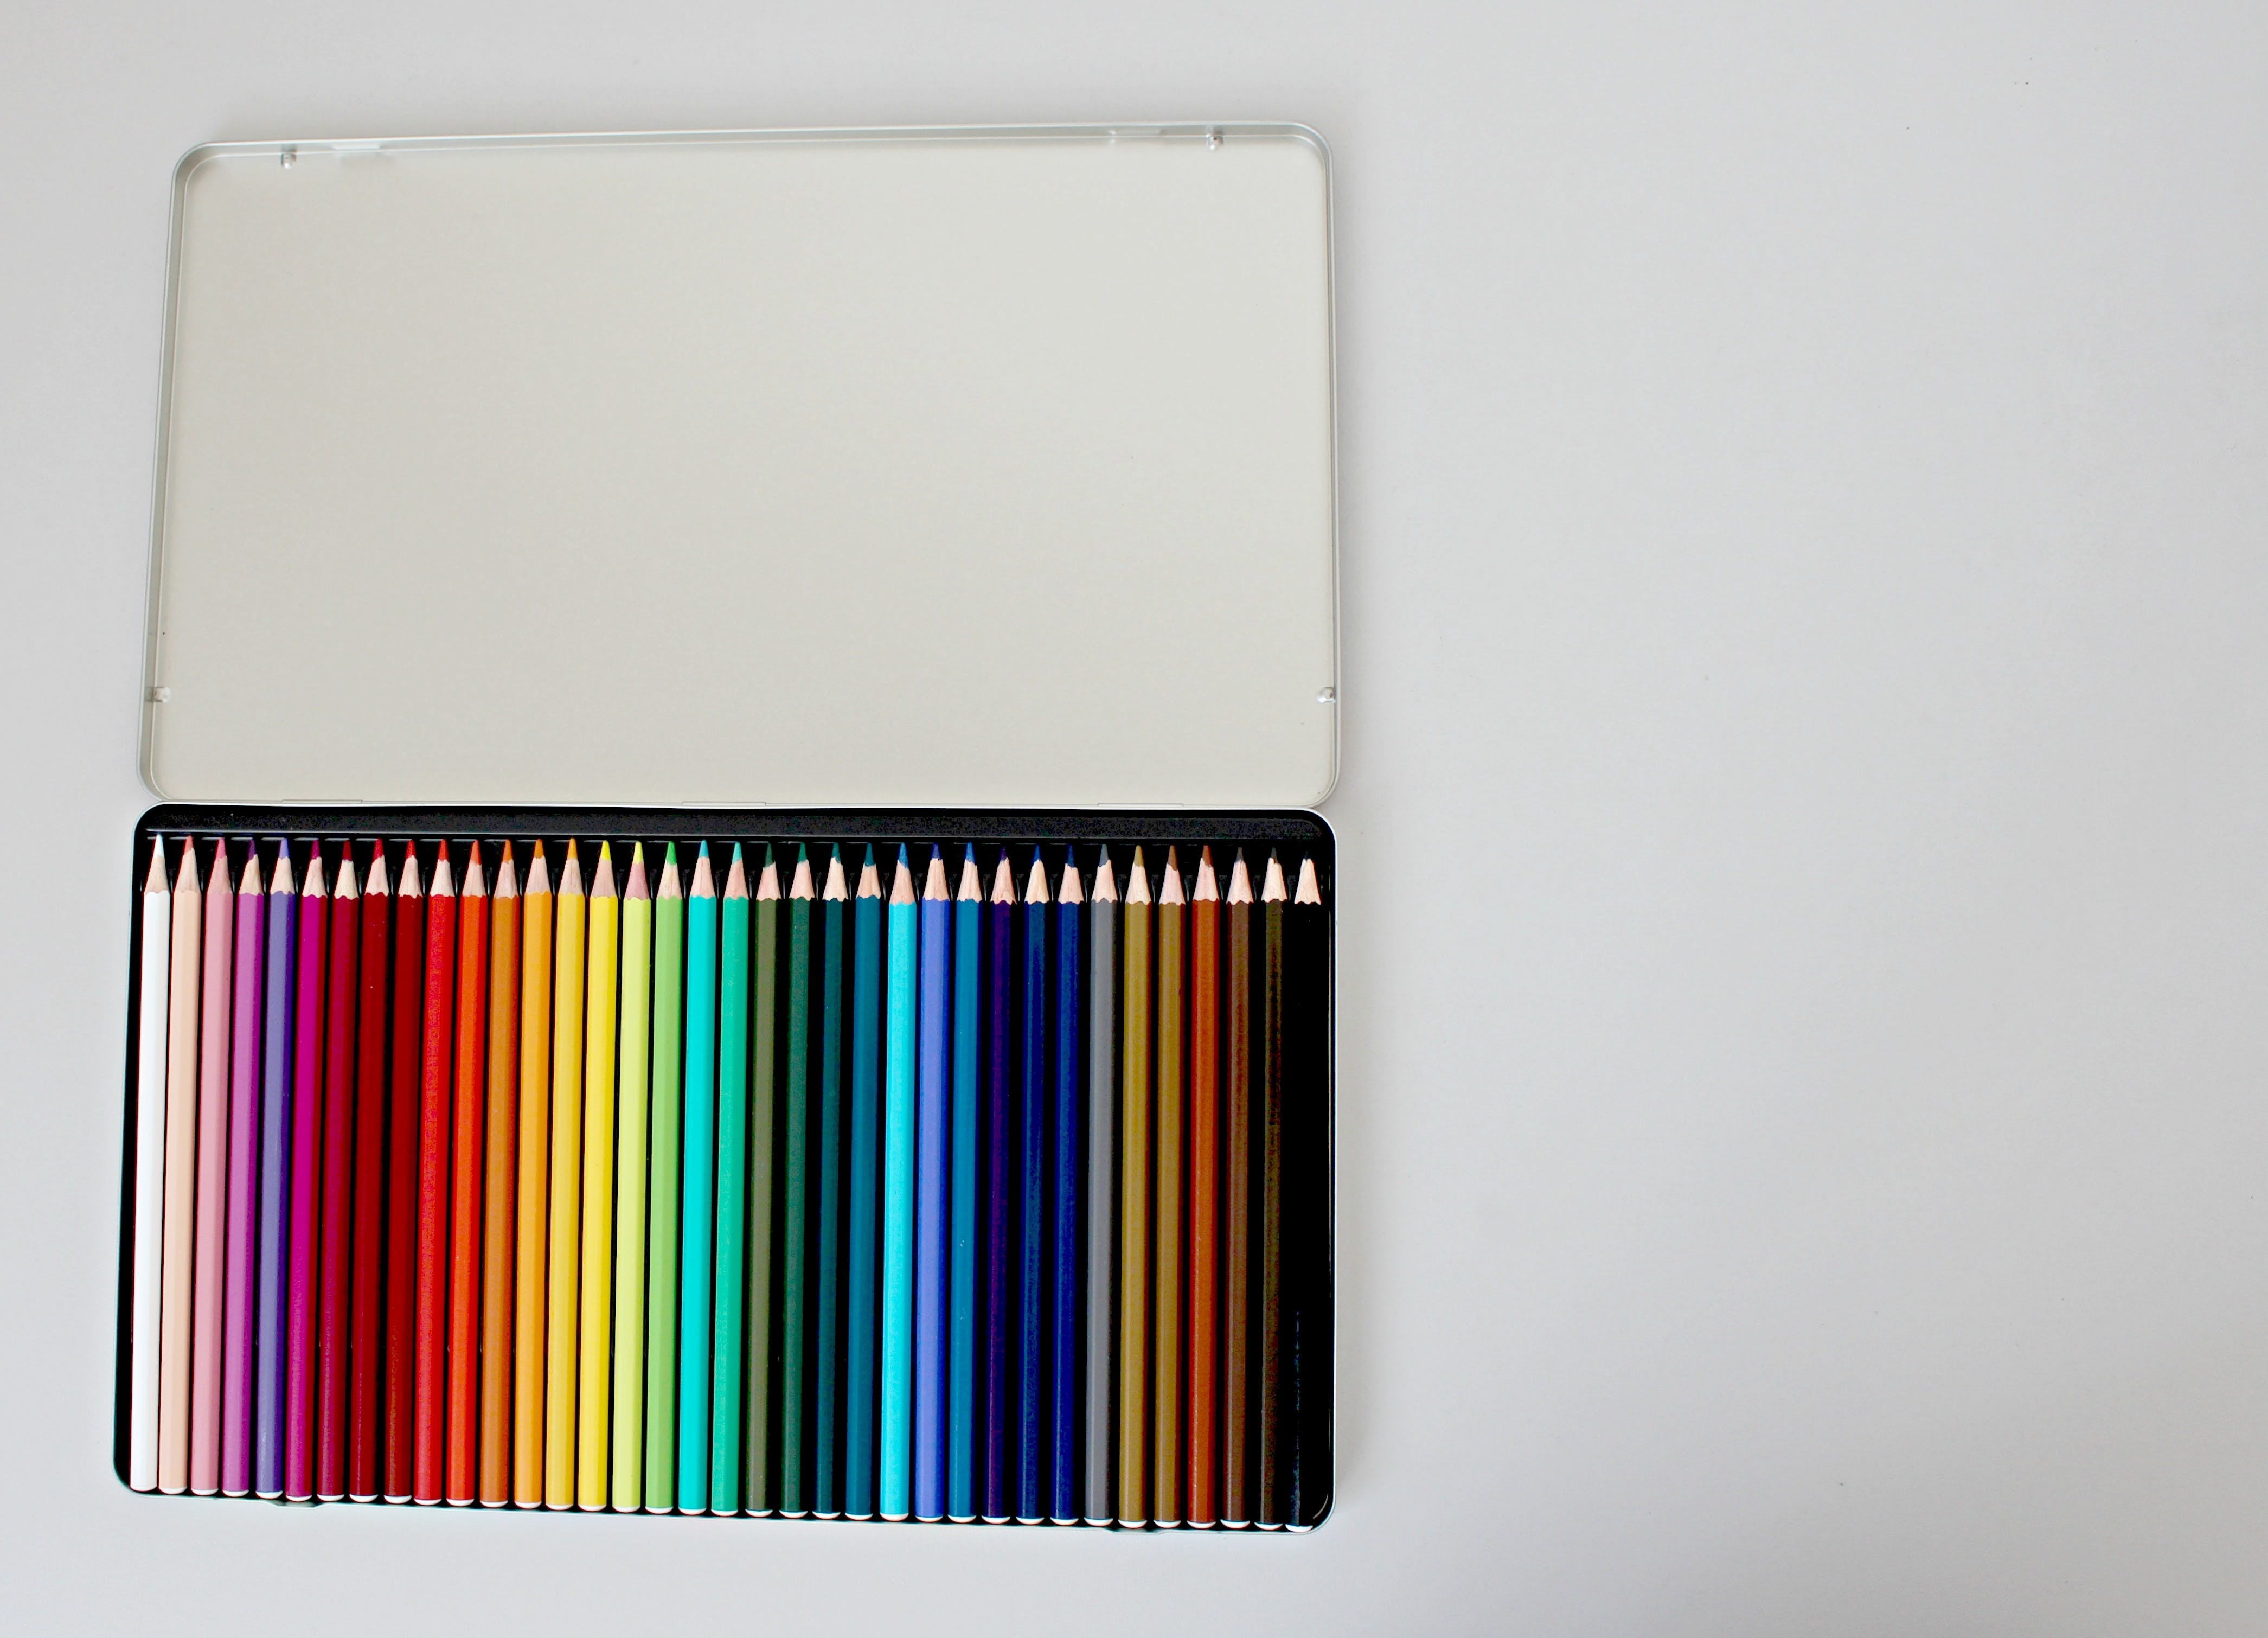 Assorted Color Pencils